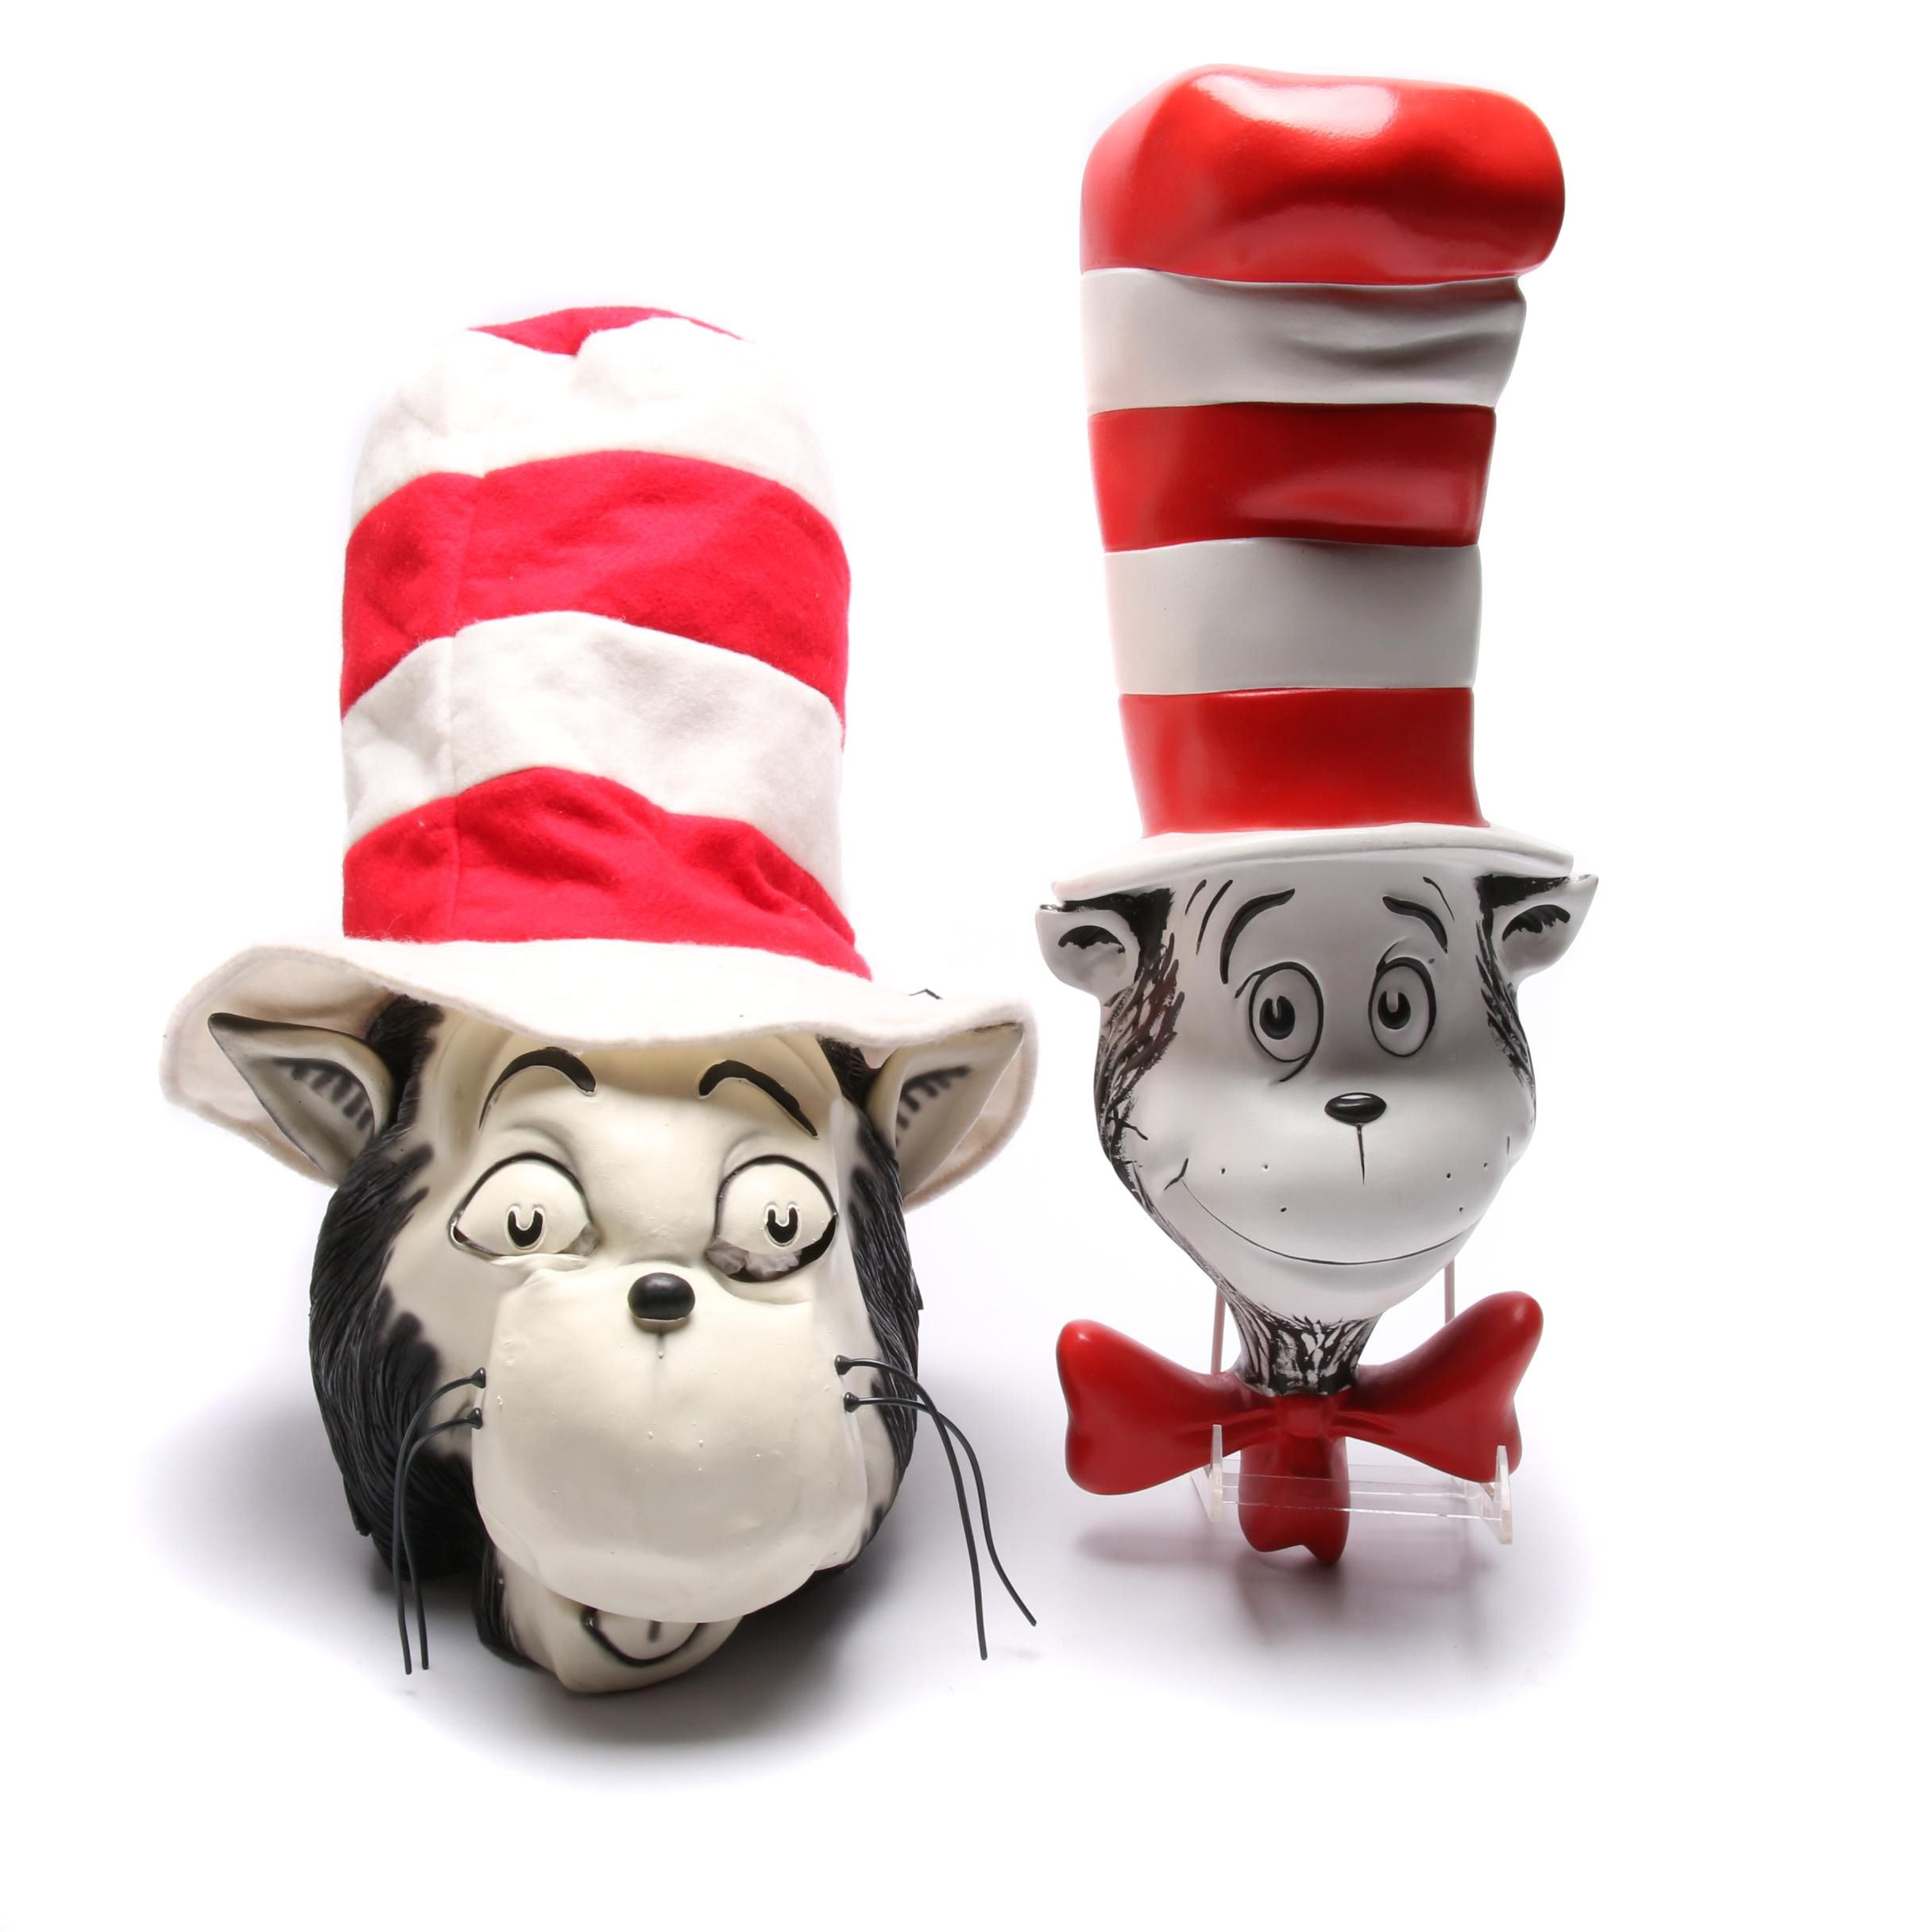 Dr. Seuss Cat in the Hat Heads